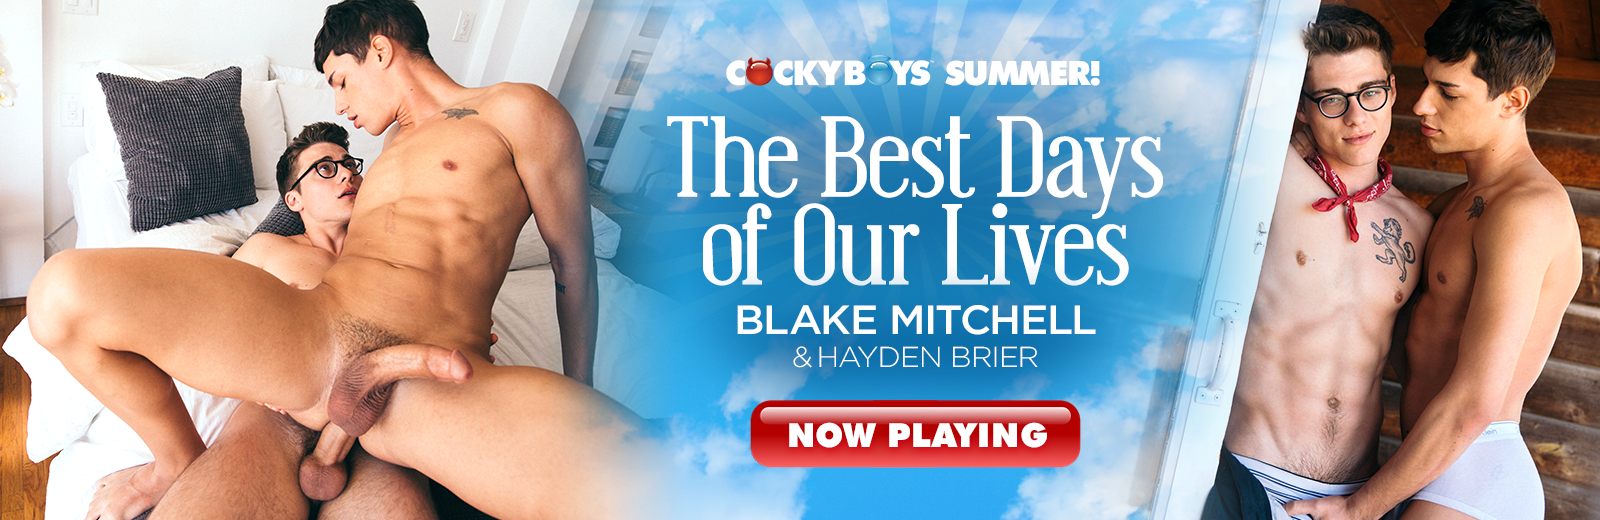 CockyBoys - The Best Days of Our Live - Blake Mitchell & Hayden Brier